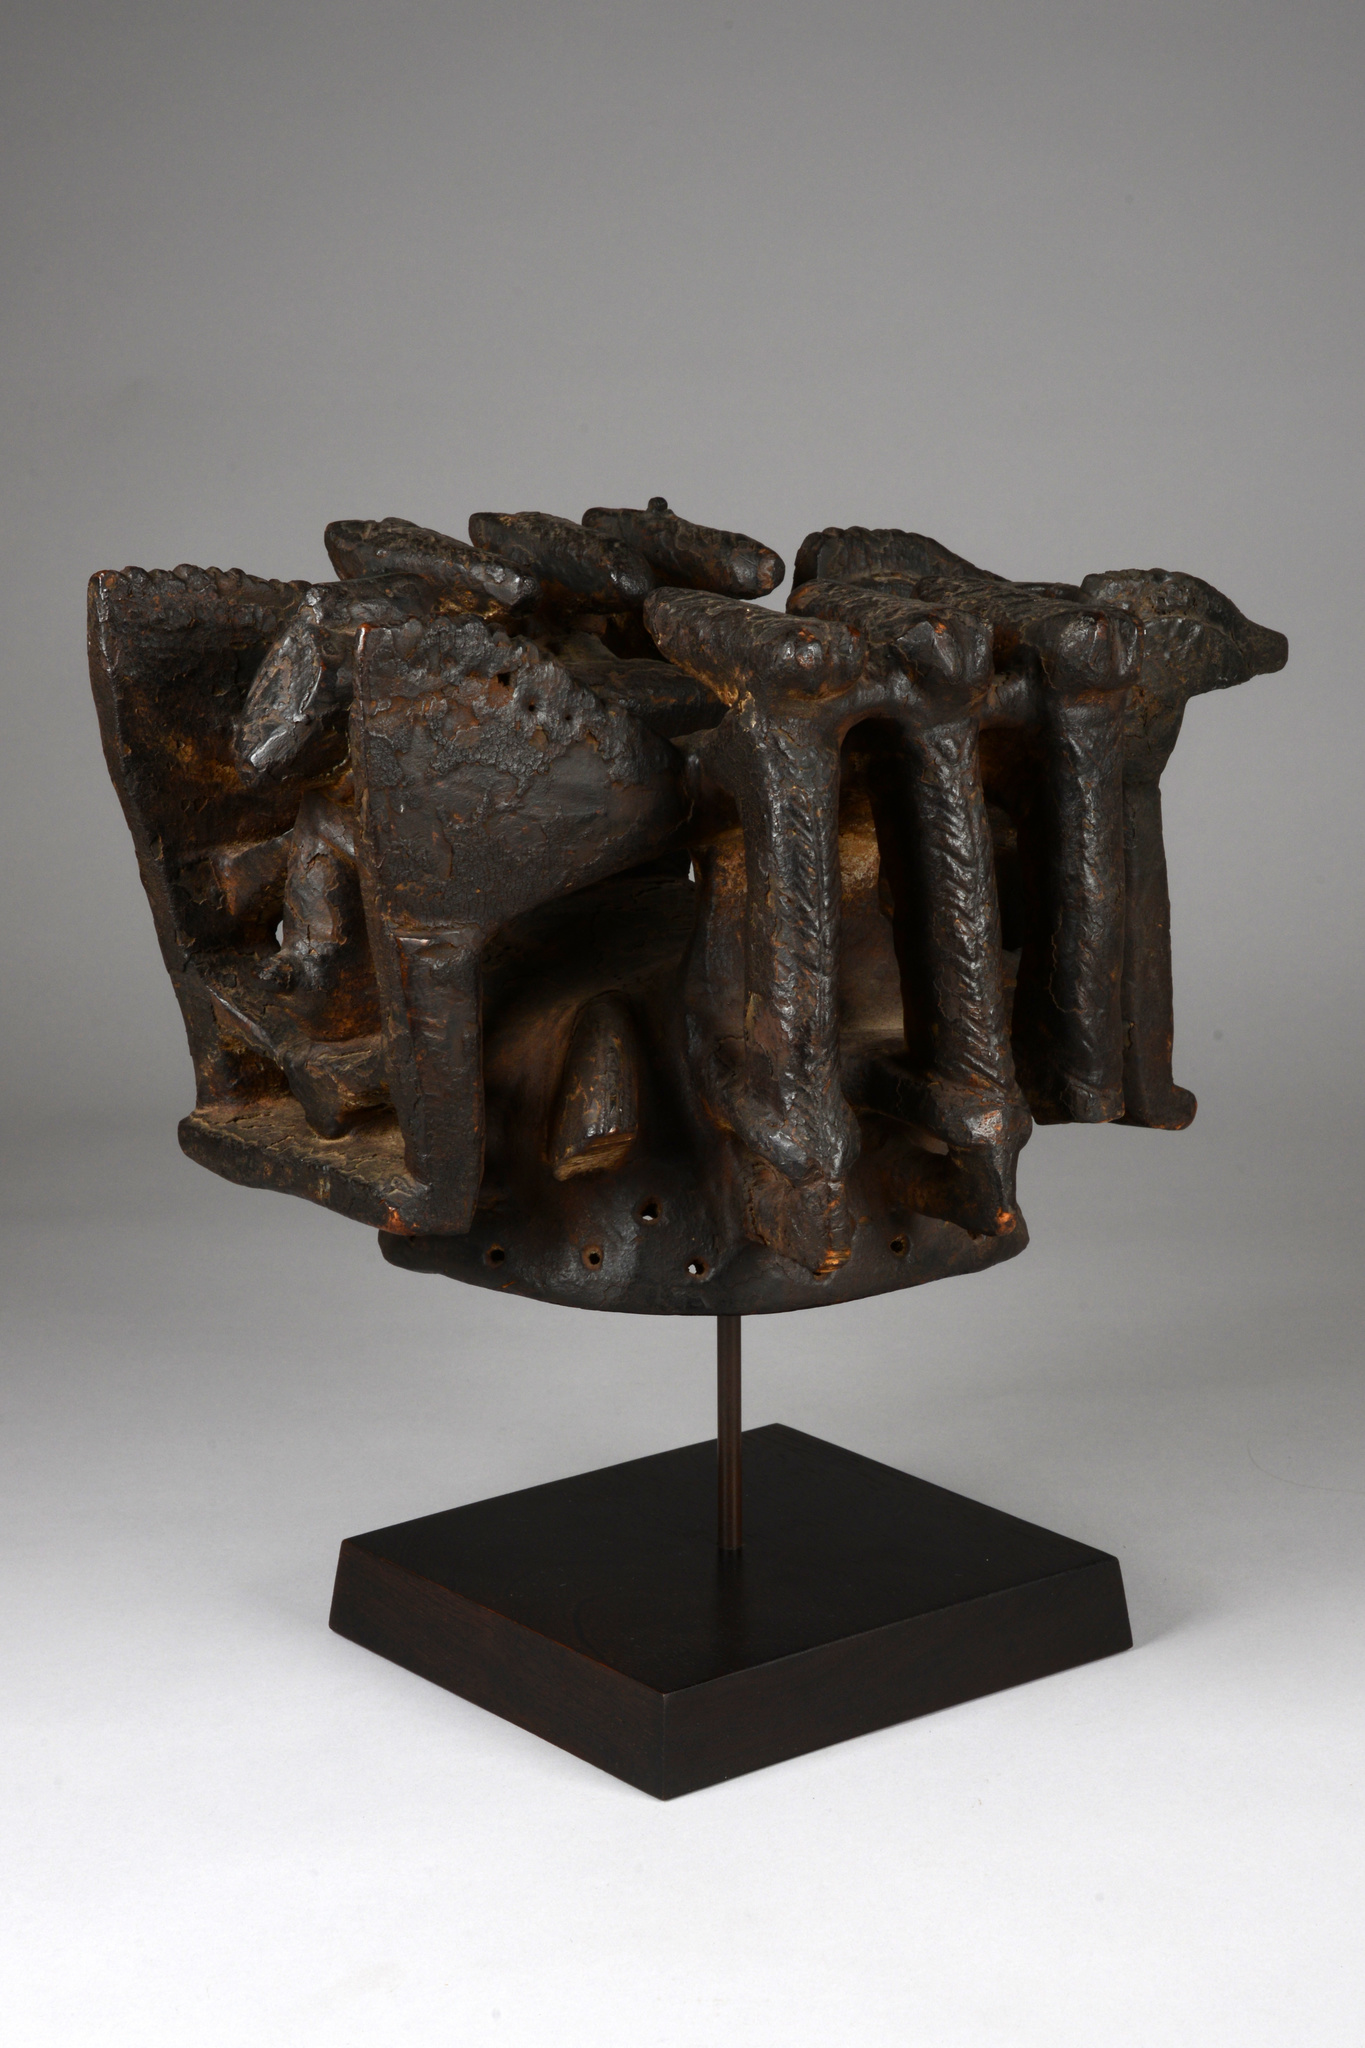 Headdress with figural superstructure